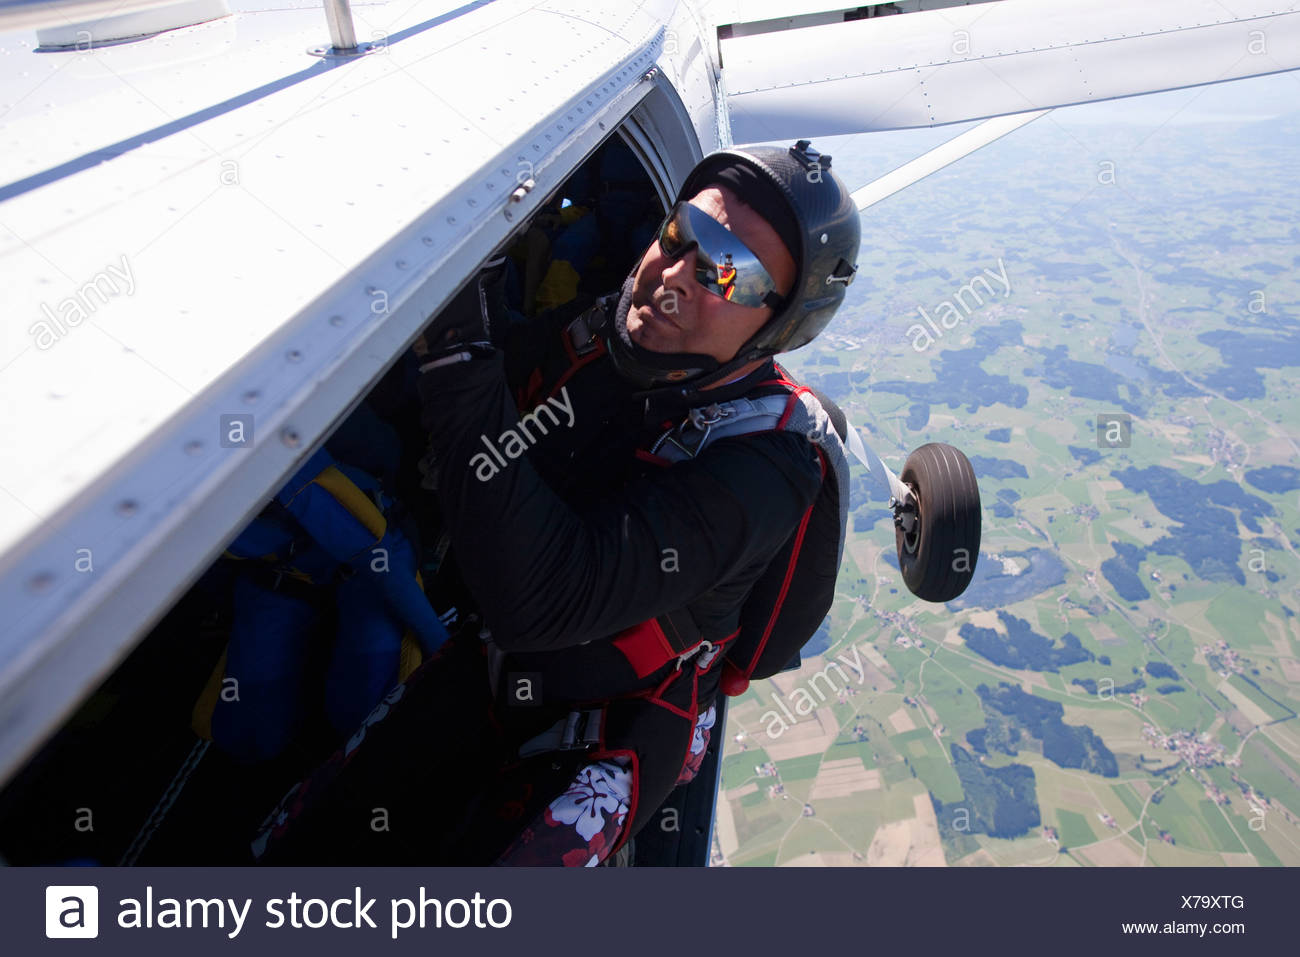 Man about to skydive from plane - Stock Image